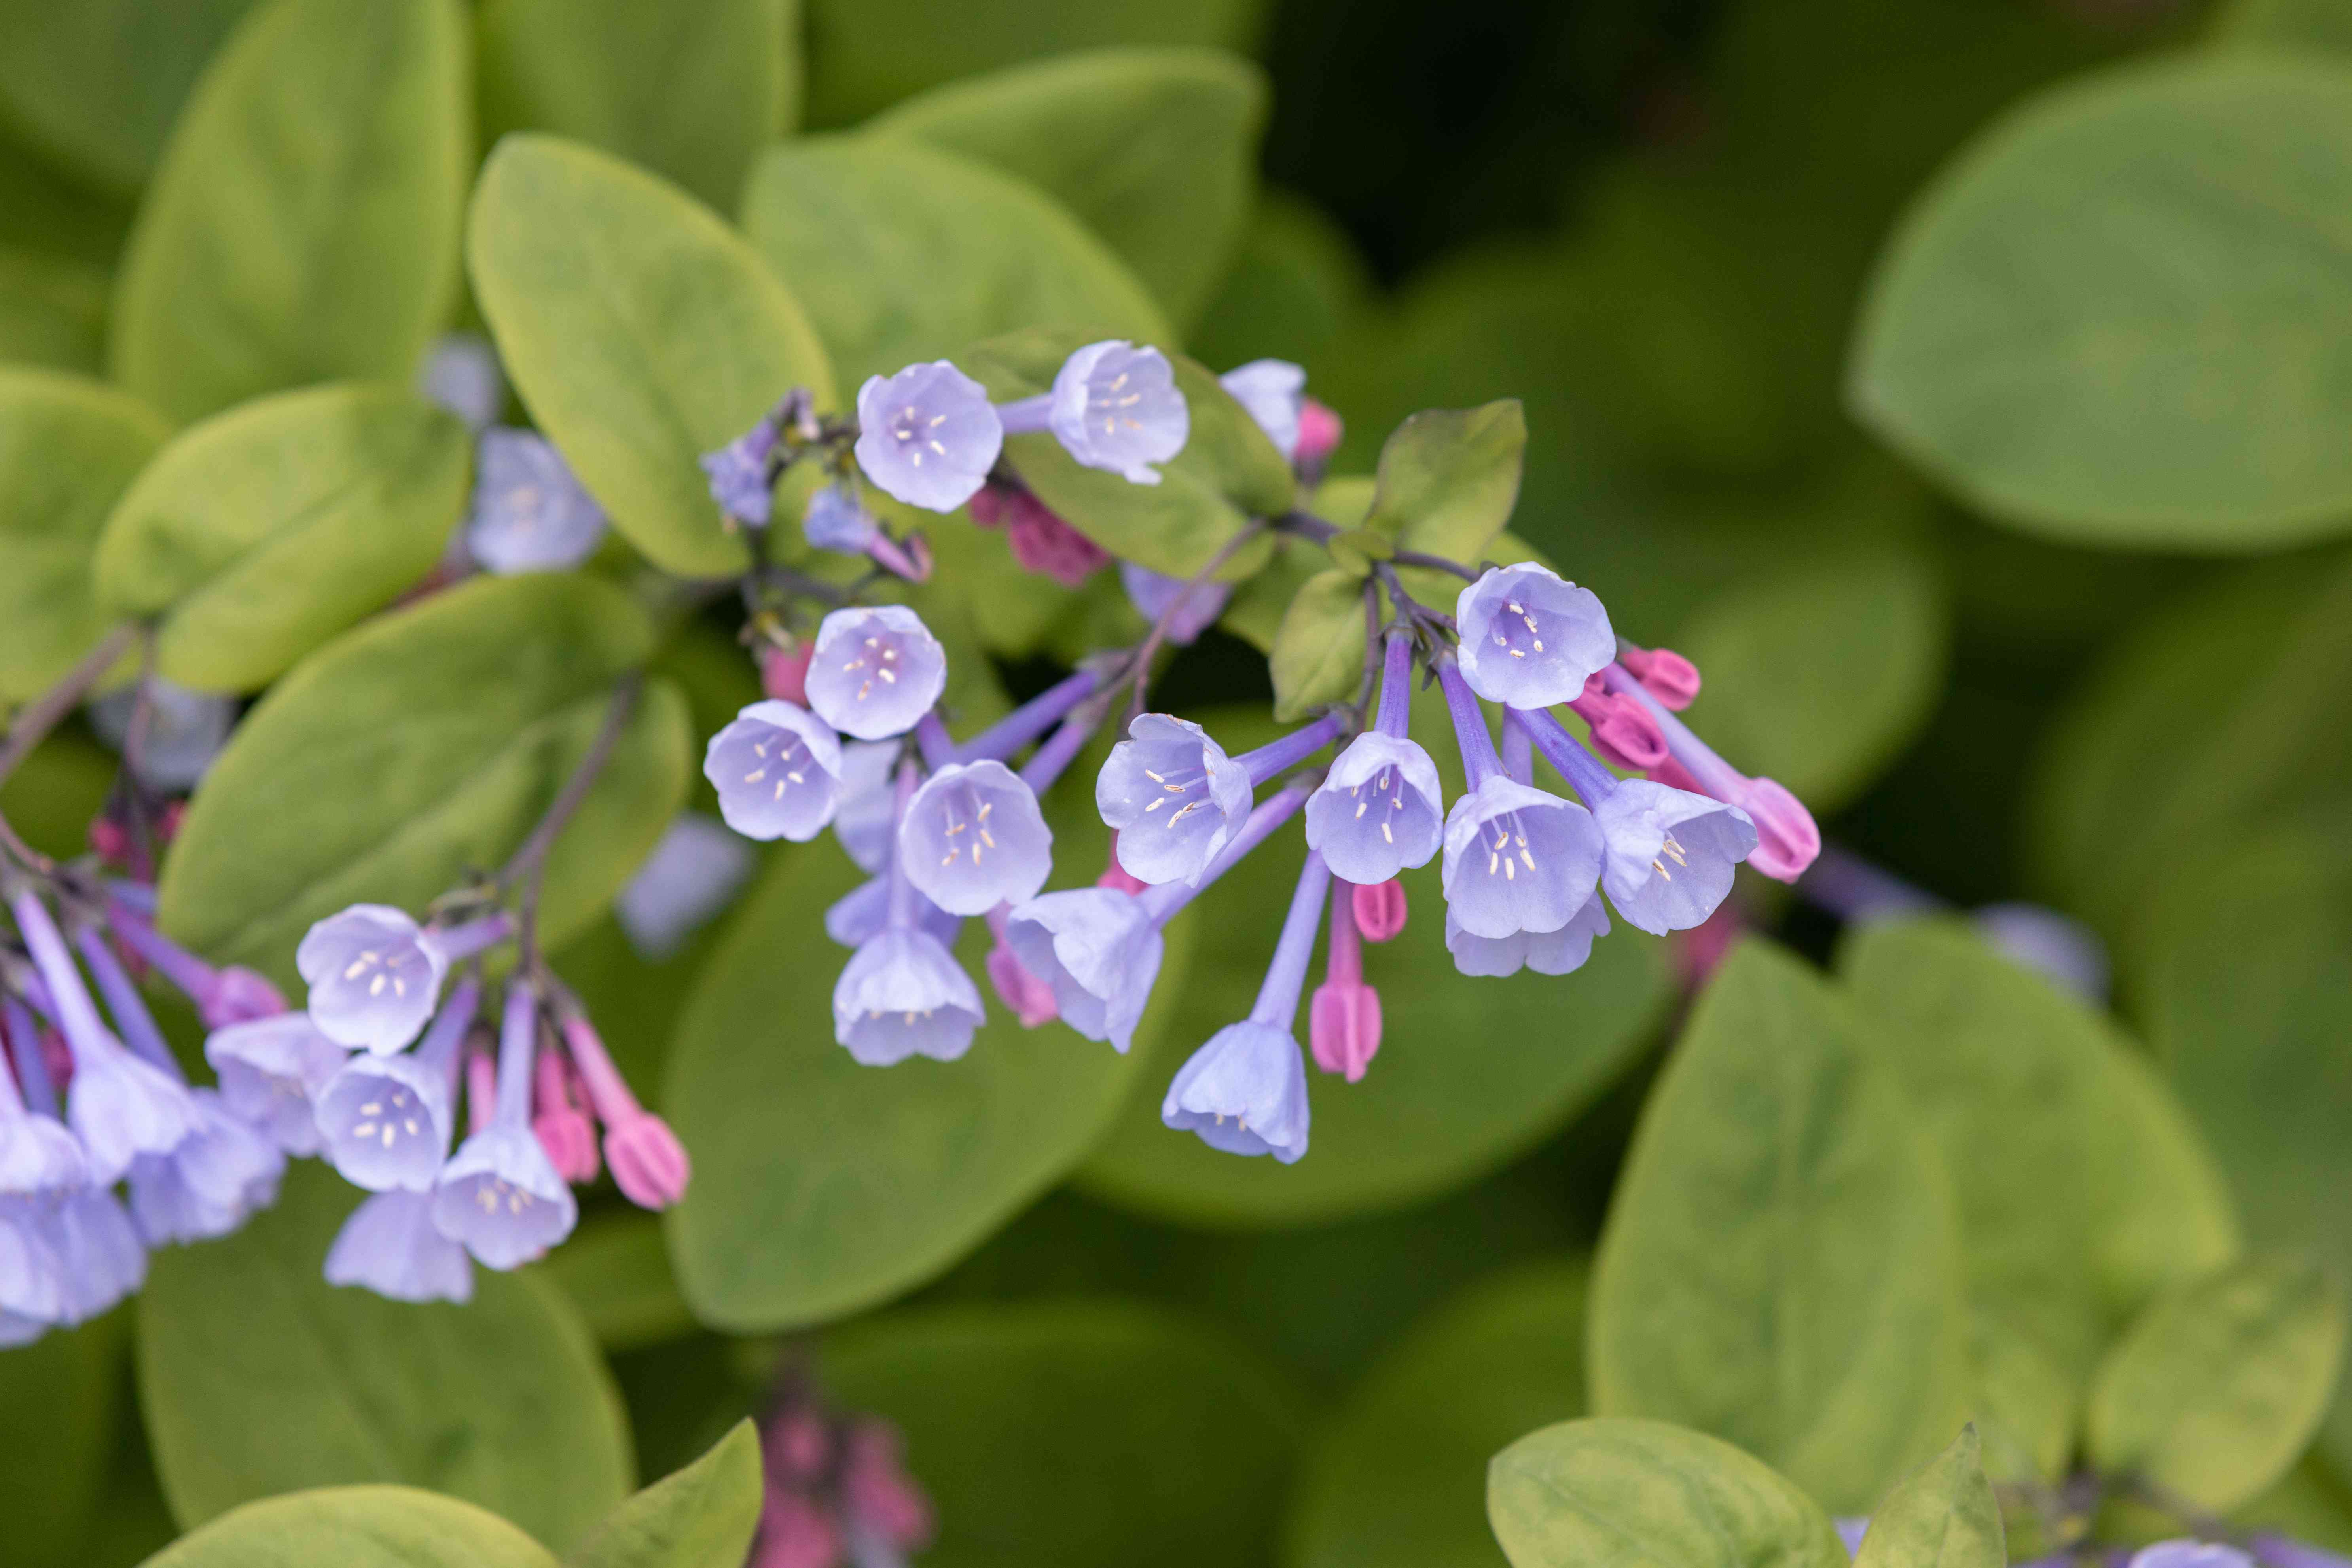 Virginia bluebell flowers with light purple trumpet-like petals and buds closeup